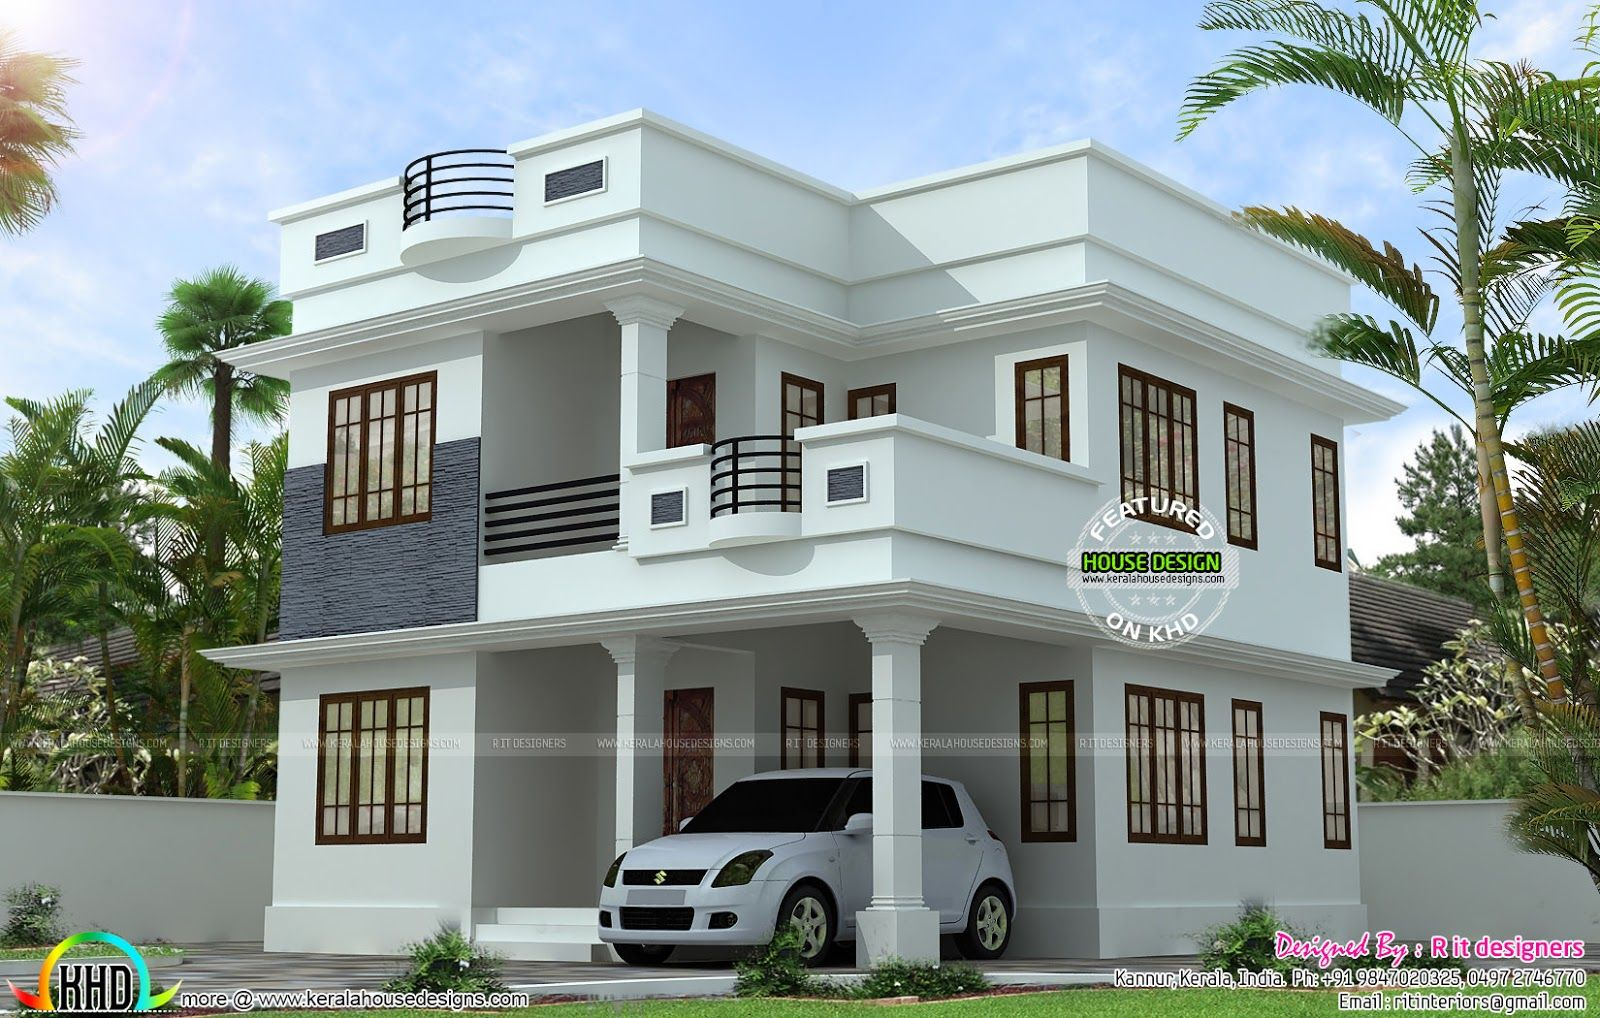 neat and simple small house plan - kerala home design and floor